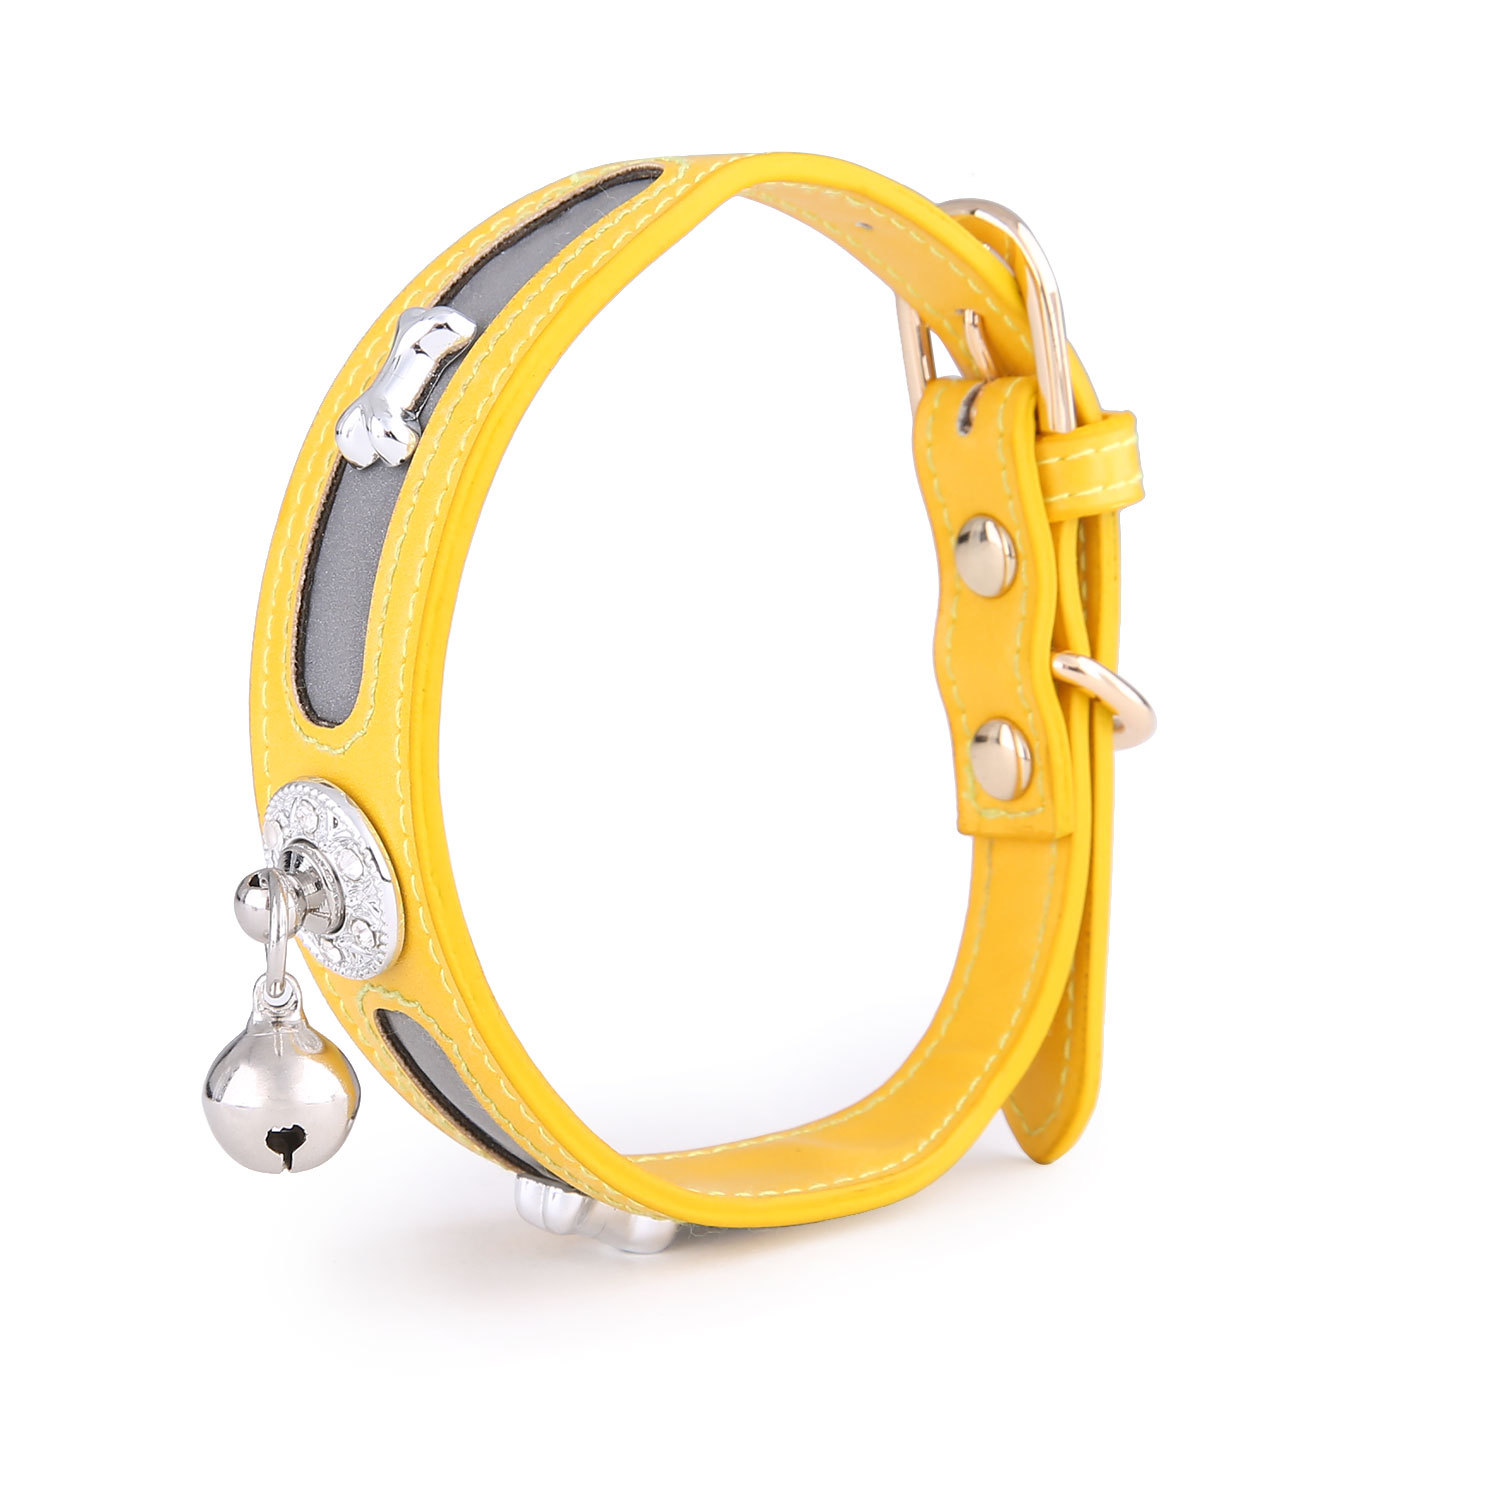 2020 Hot Selling Pet Bone Standard Neck Ring Small, Medium And Large Pet Cat Dog Reflective Neck Ring